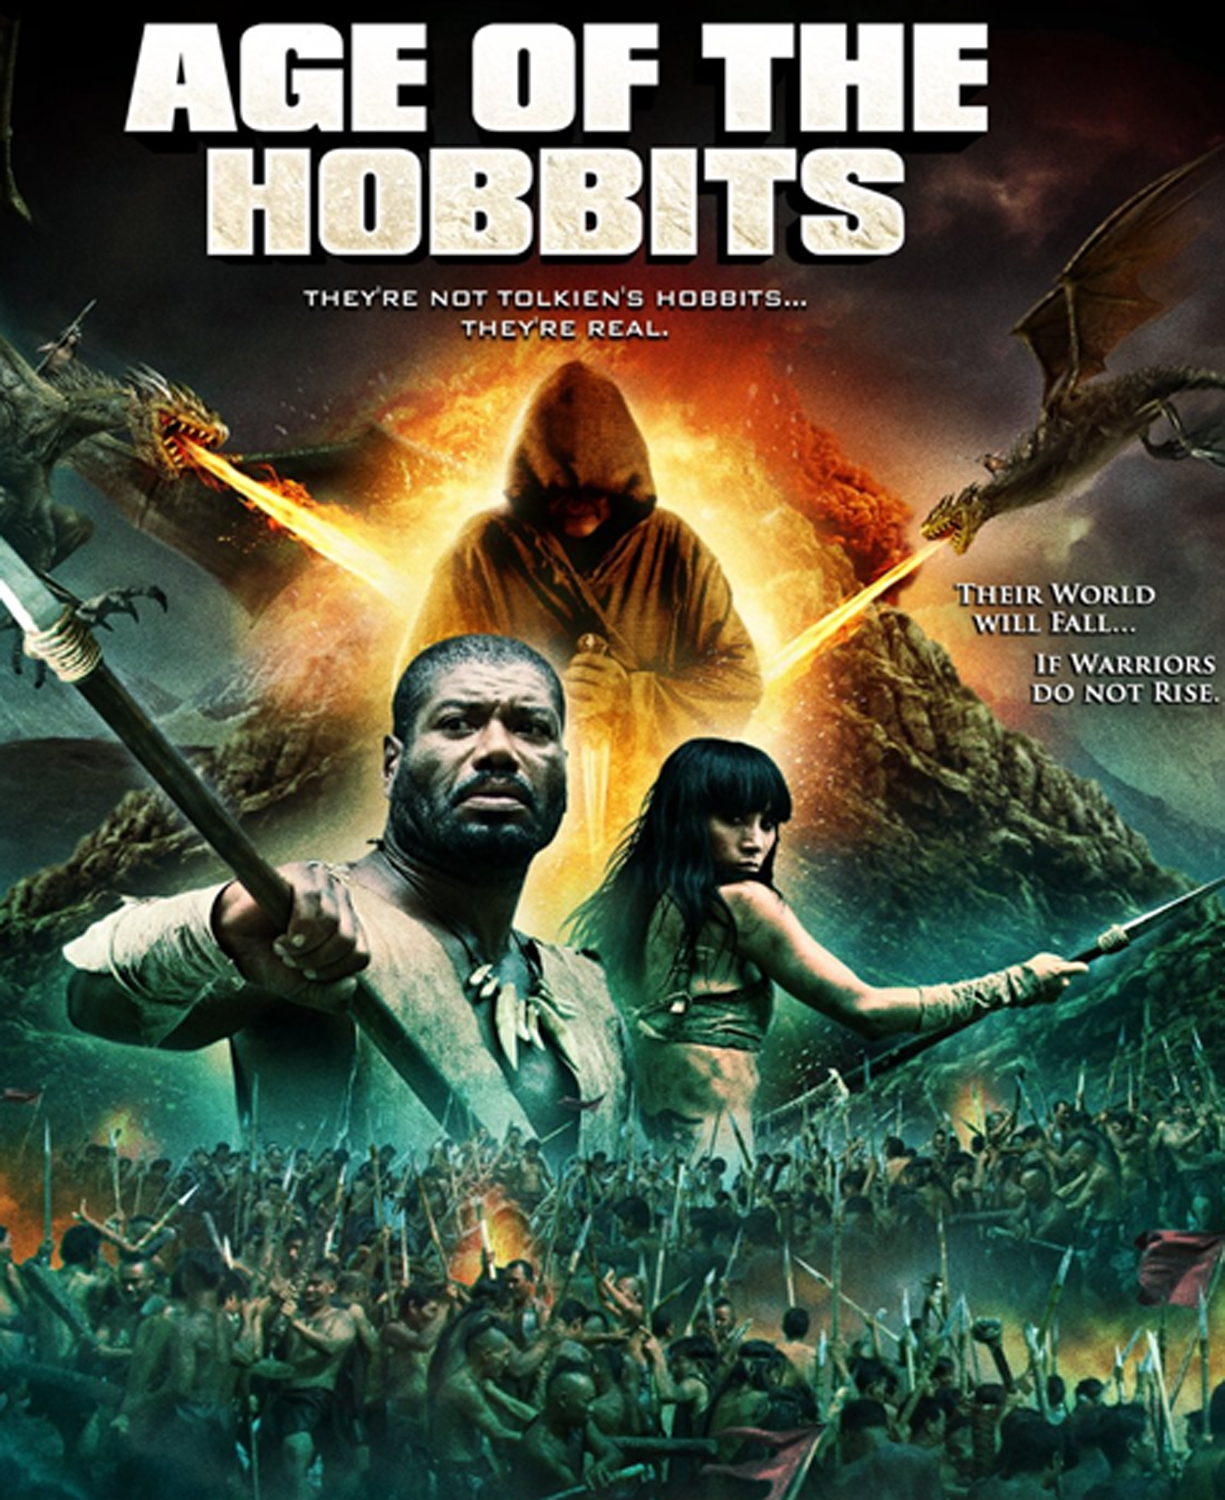 Age of the Hobbits 2012 Hindi Dual Audio 720p BluRay ESub 841MB Download